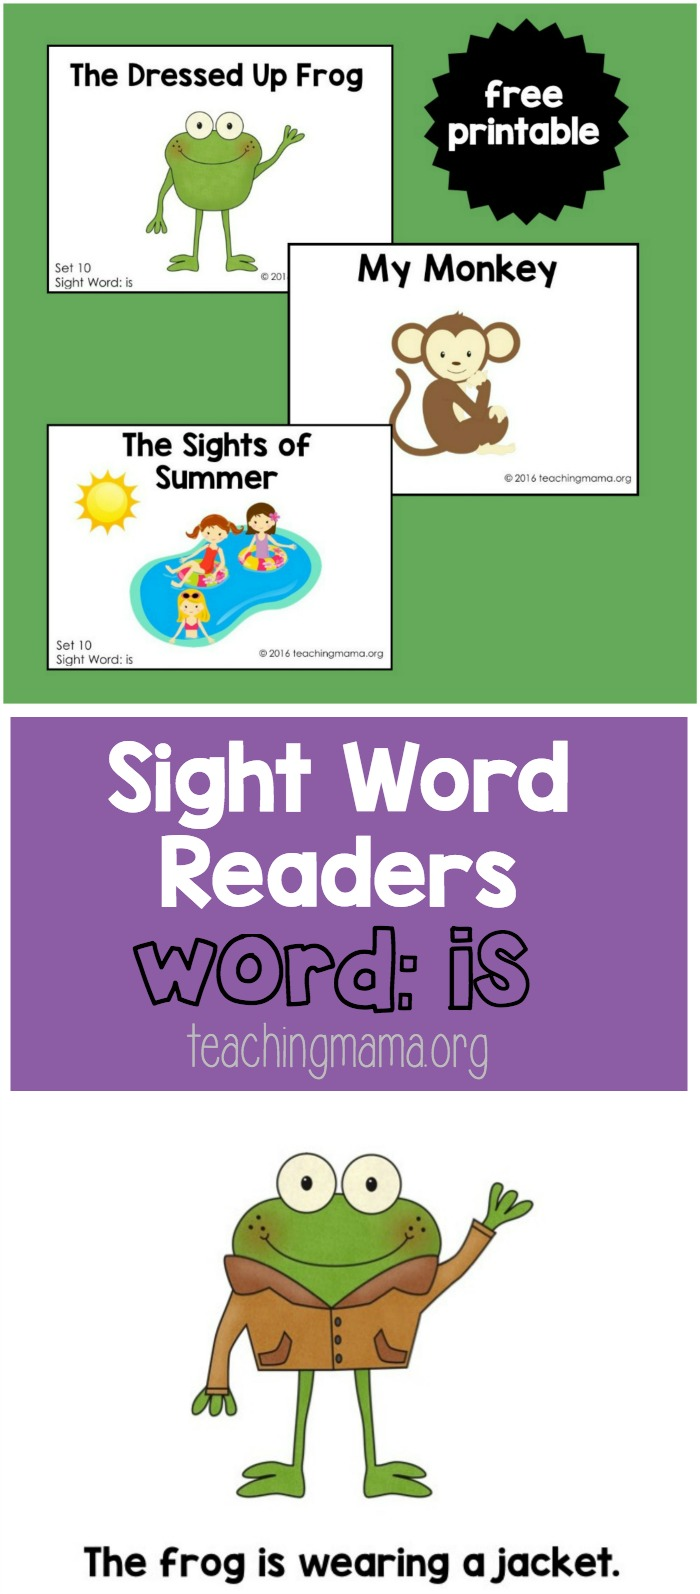 Sight Word Readers - Is